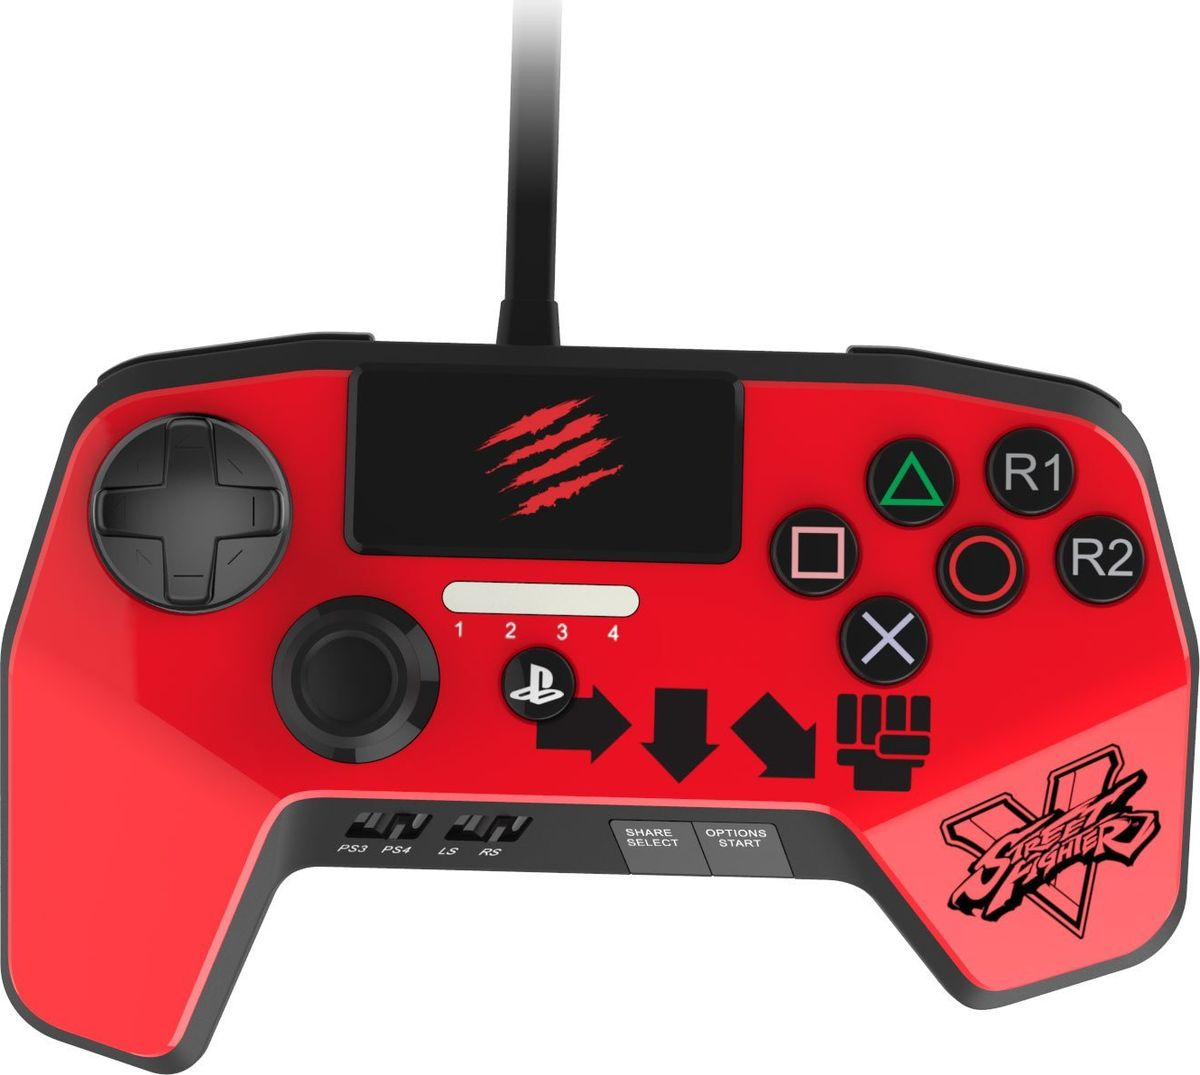 Mad Catz Street Fighter V FightPad Pro-Ken, Red аркадный геймпад для PS4 (SFV89250BSA3/04/1)